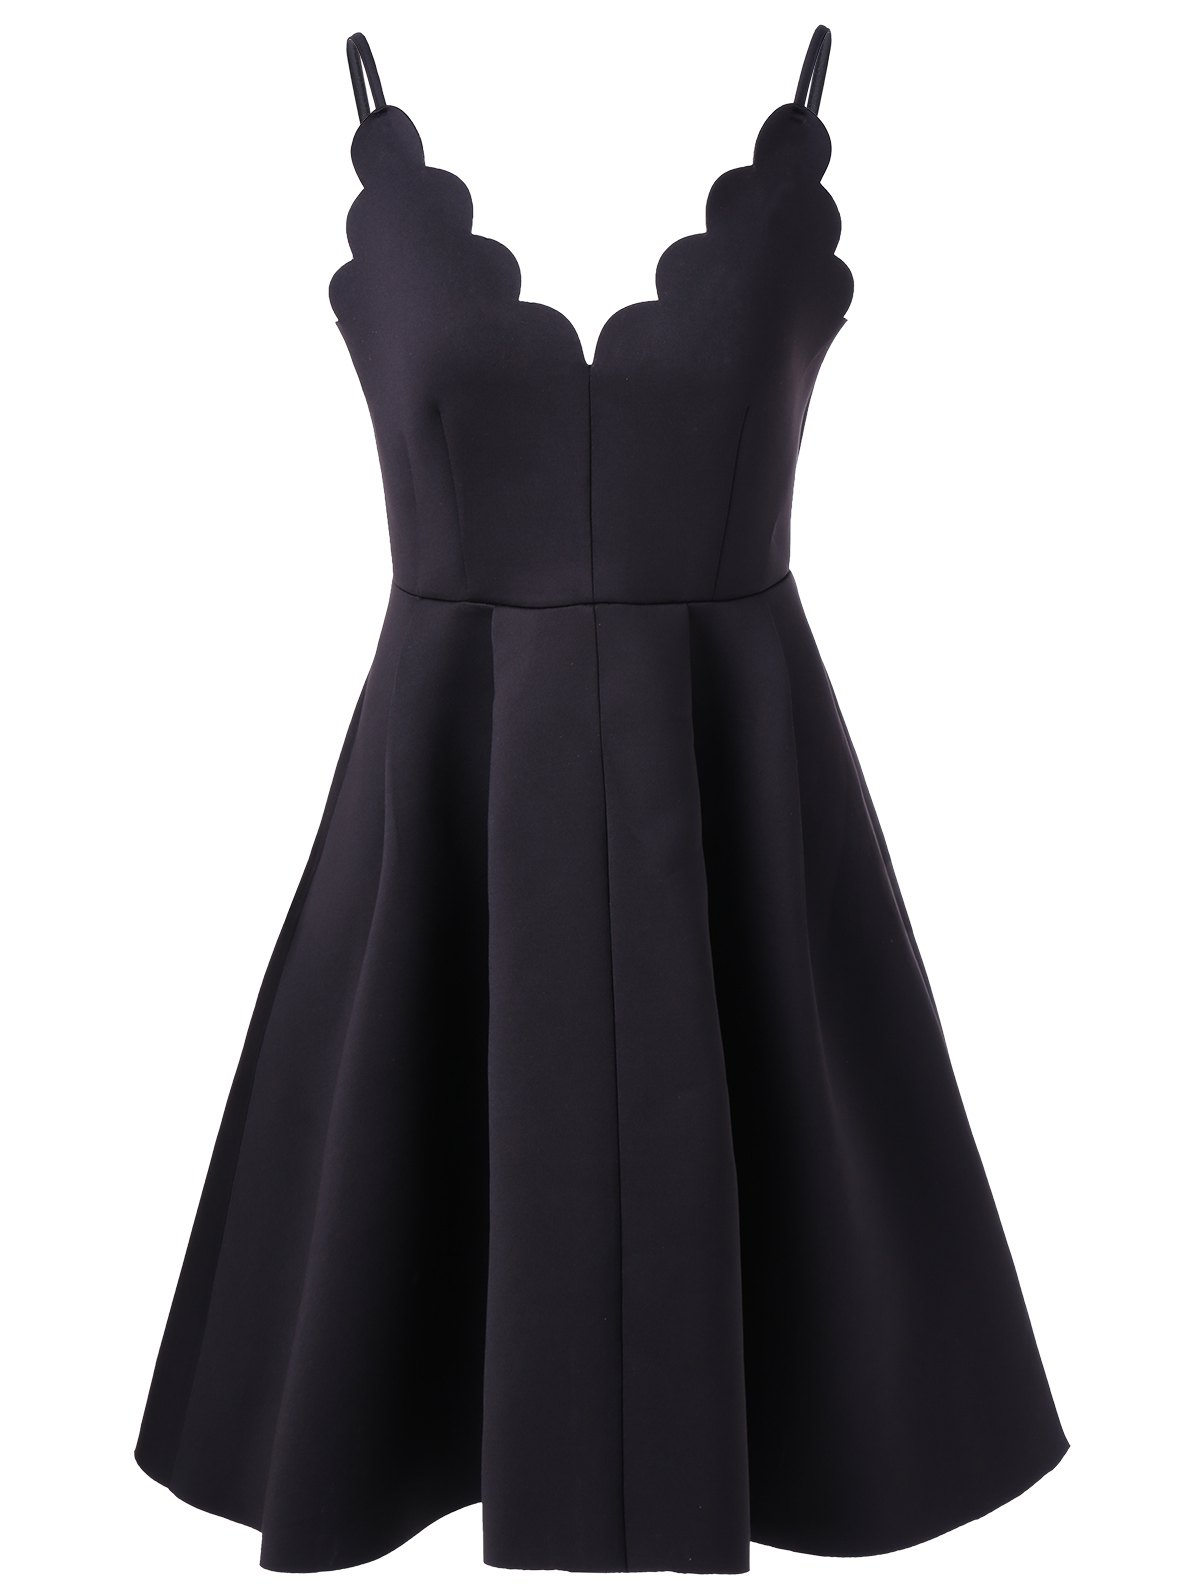 Scalloped A Line Cocktail Slip Dress - BLACK XL